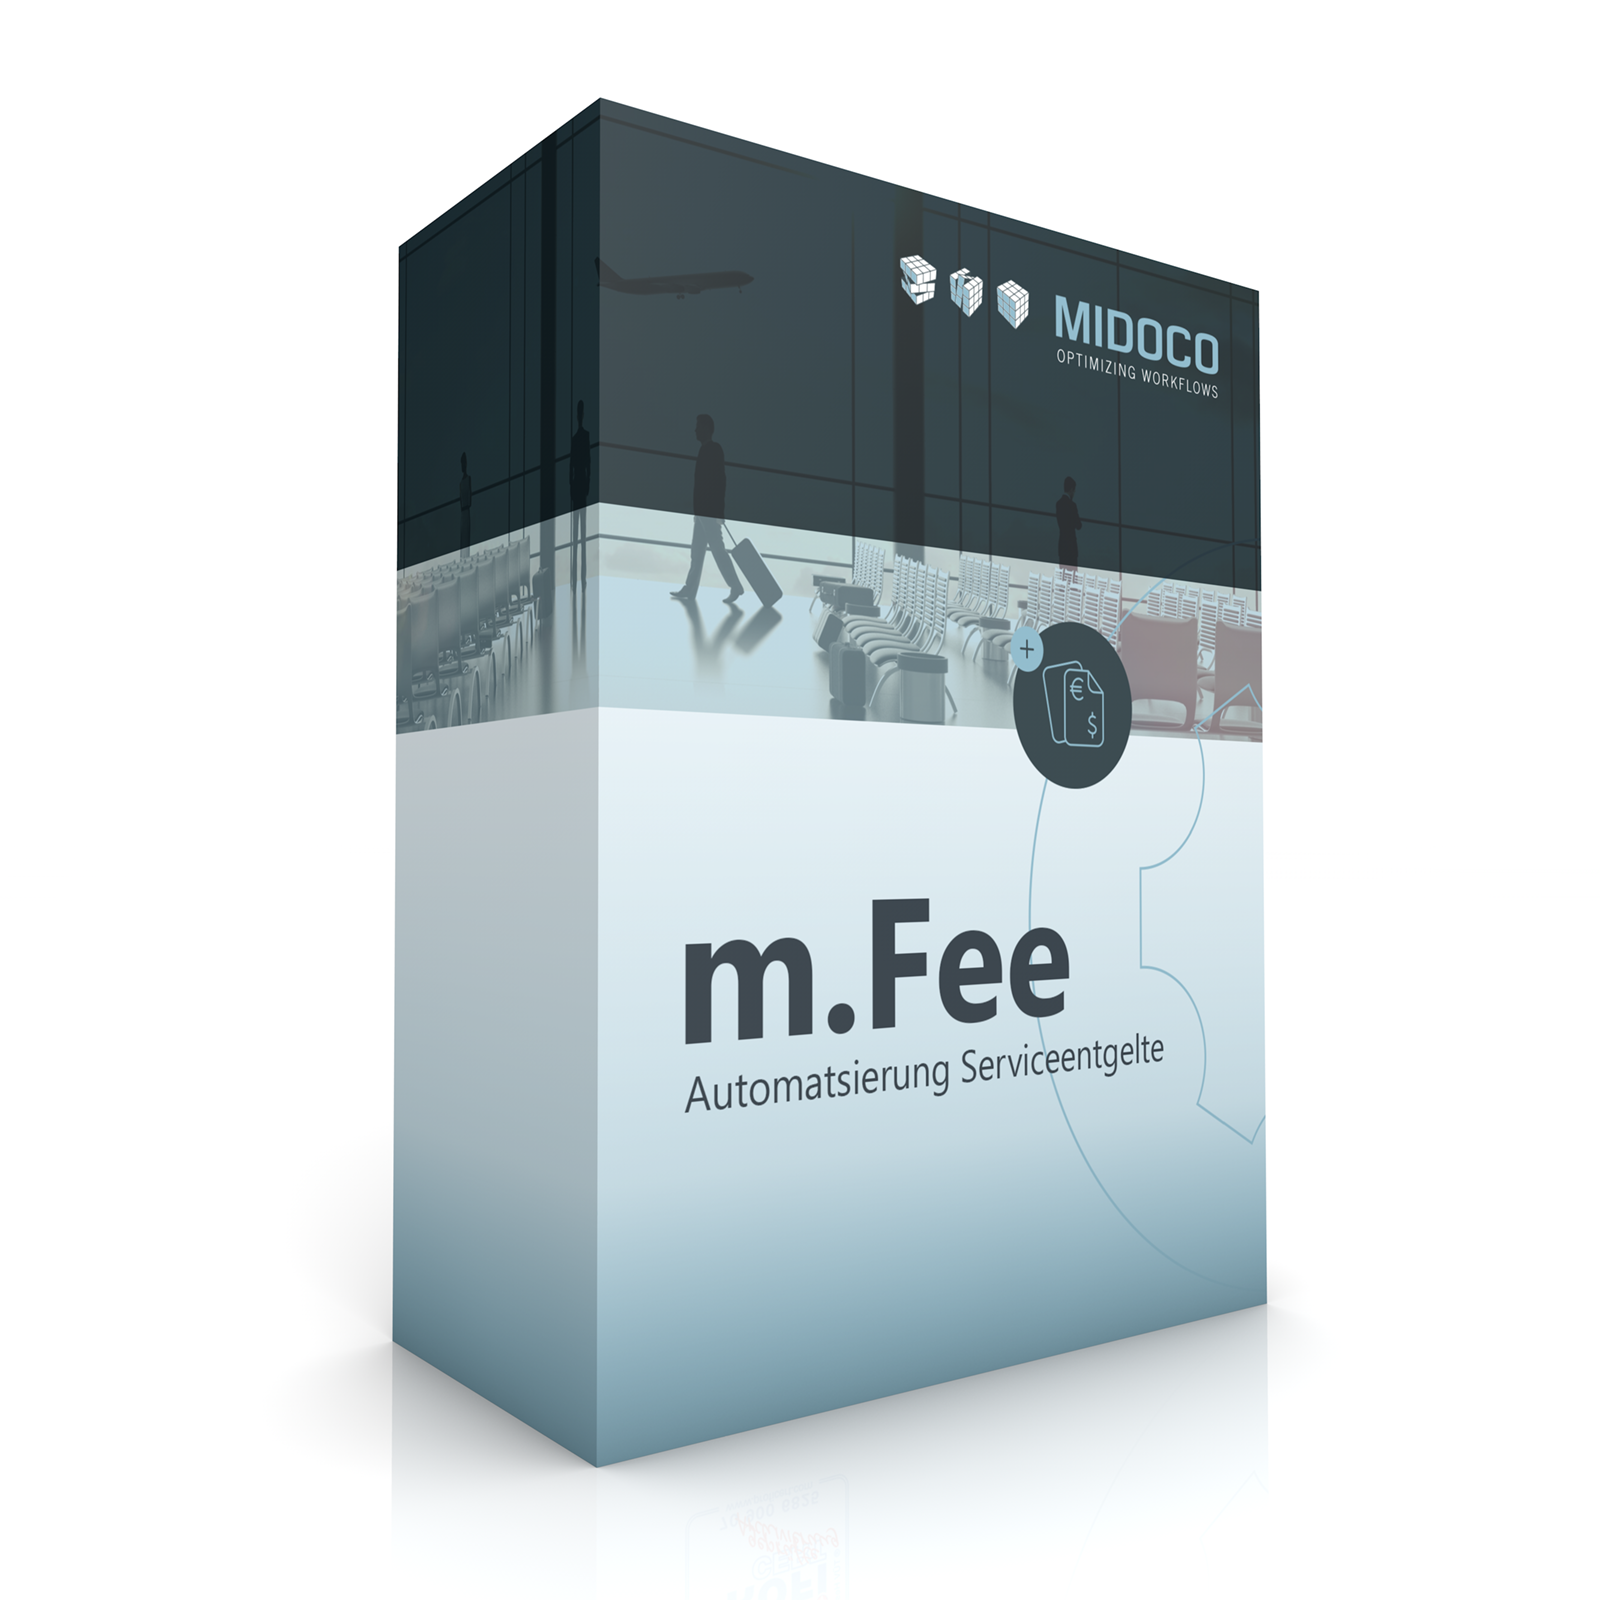 Midoco-Images-Add-ons-Product-Box-mFee-1